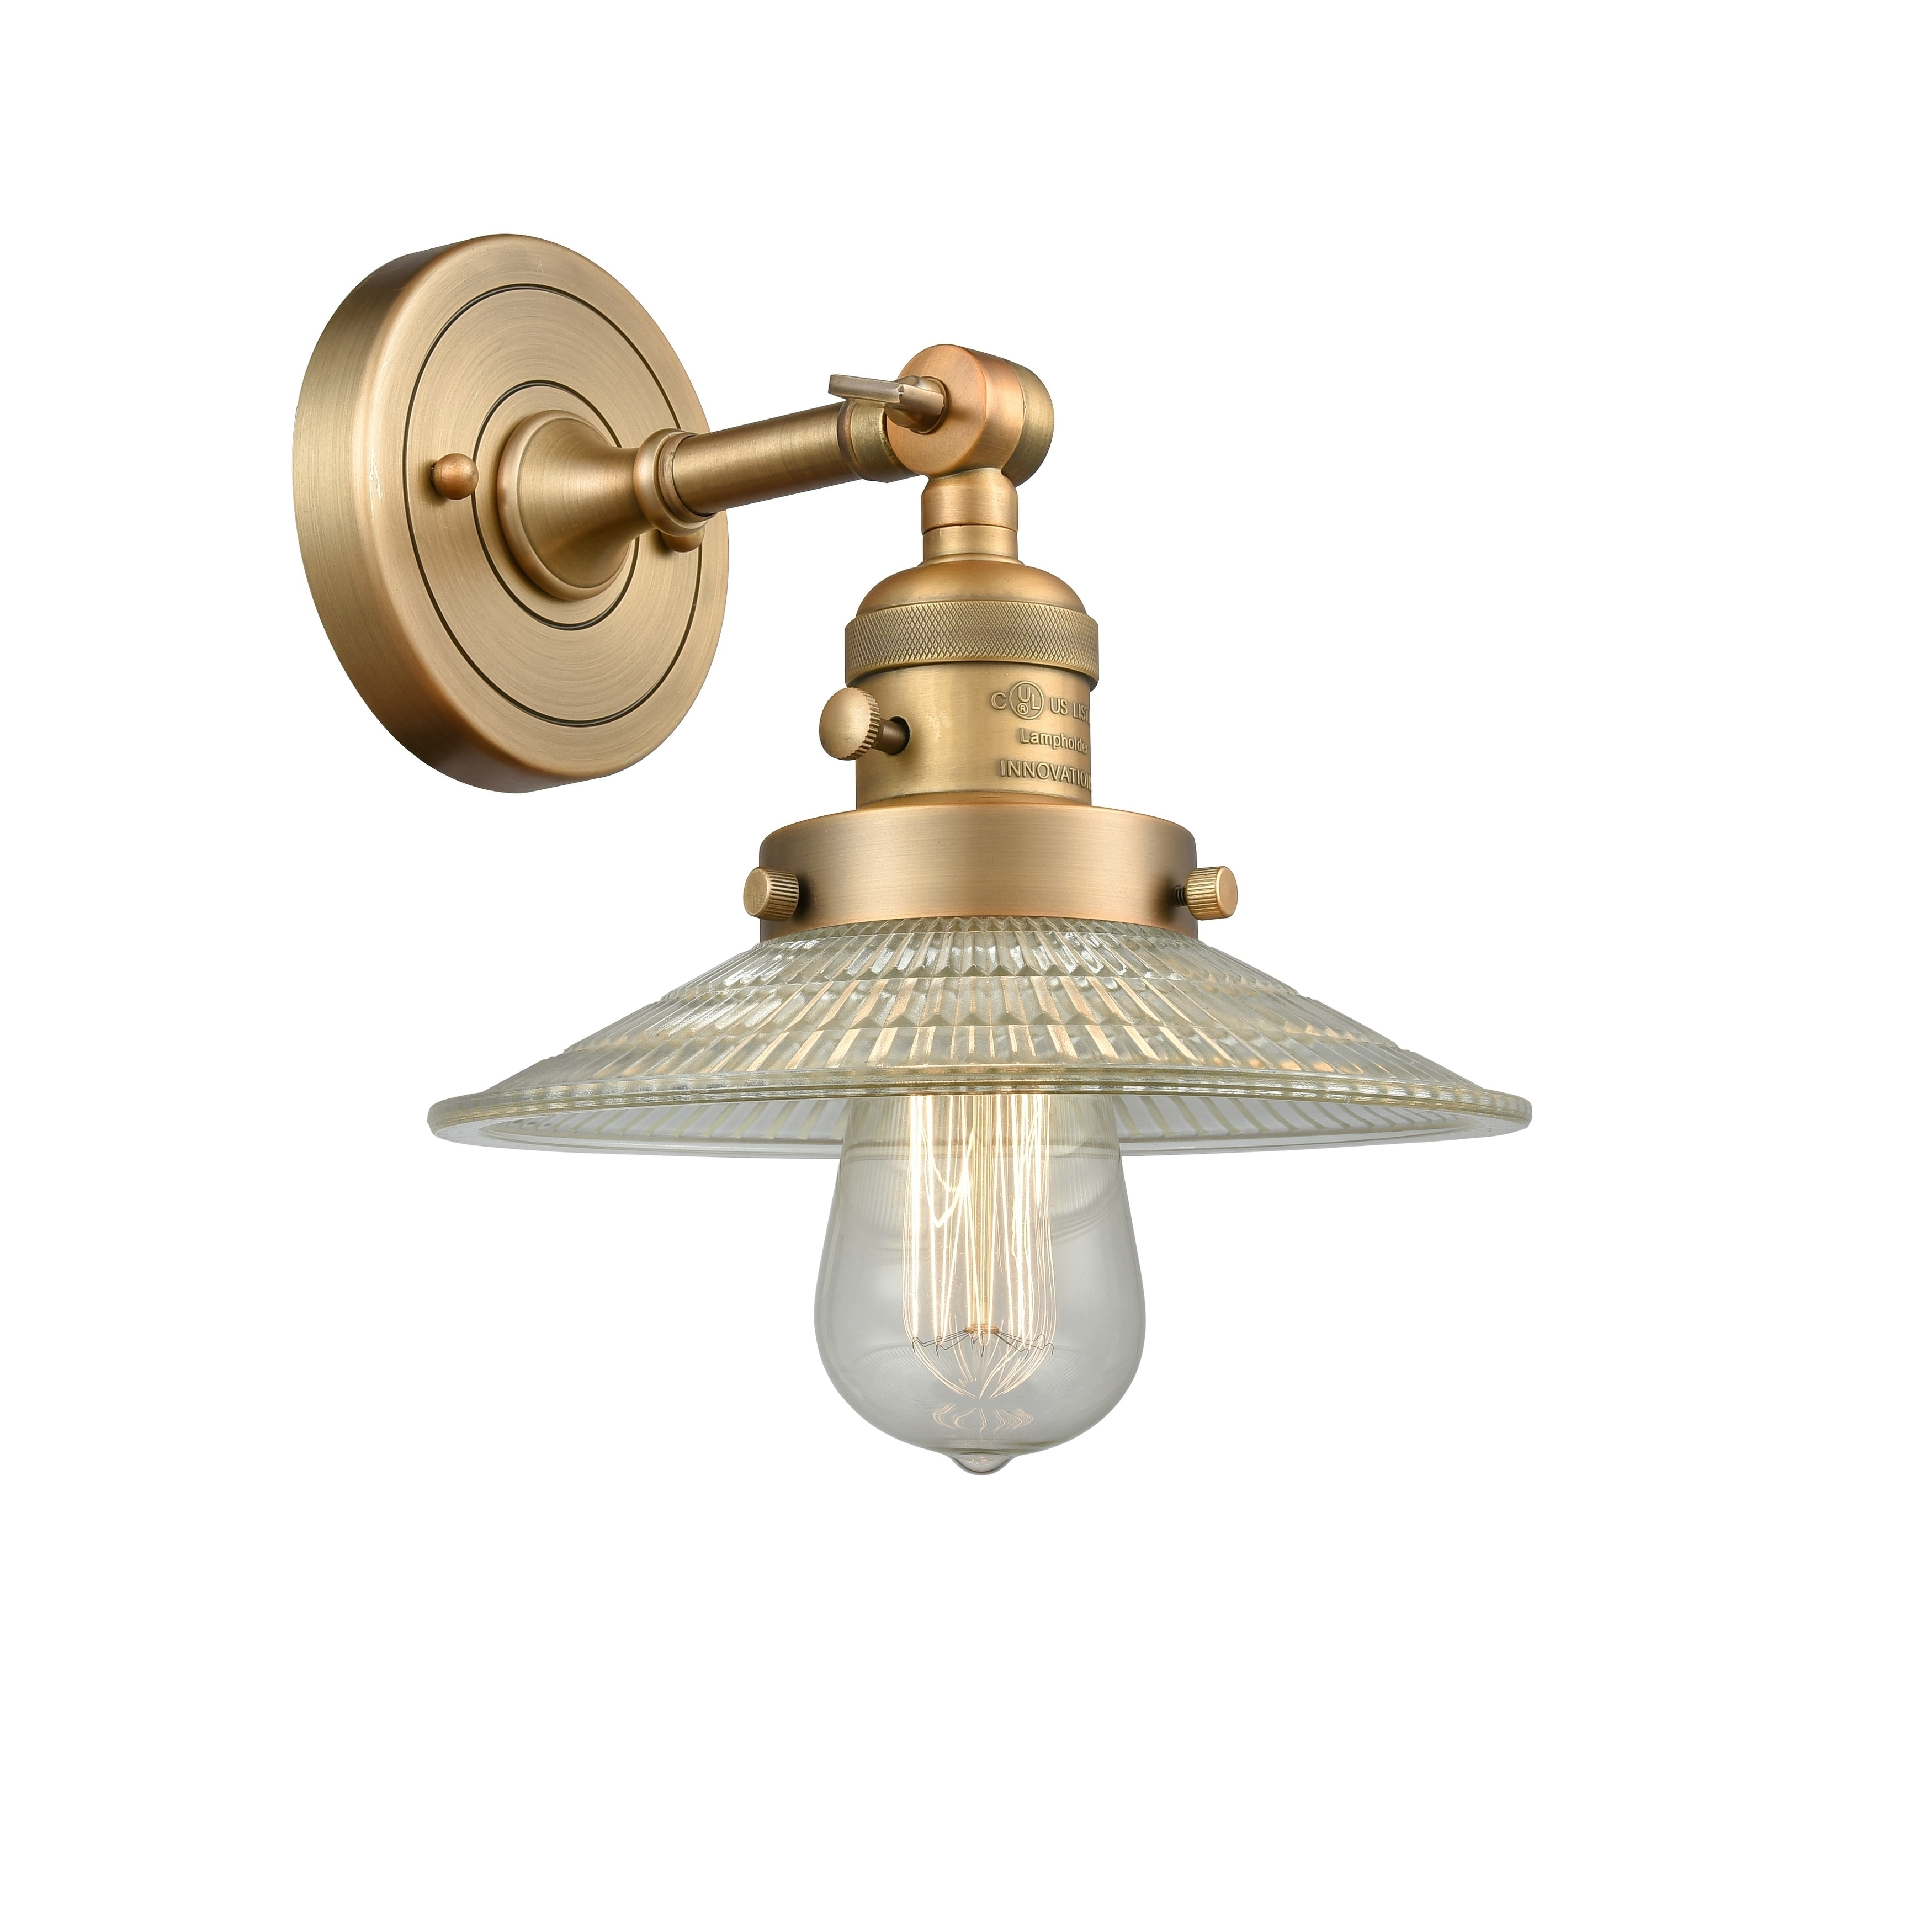 Innovations lighting colton 1 light adjustable sconce with switch